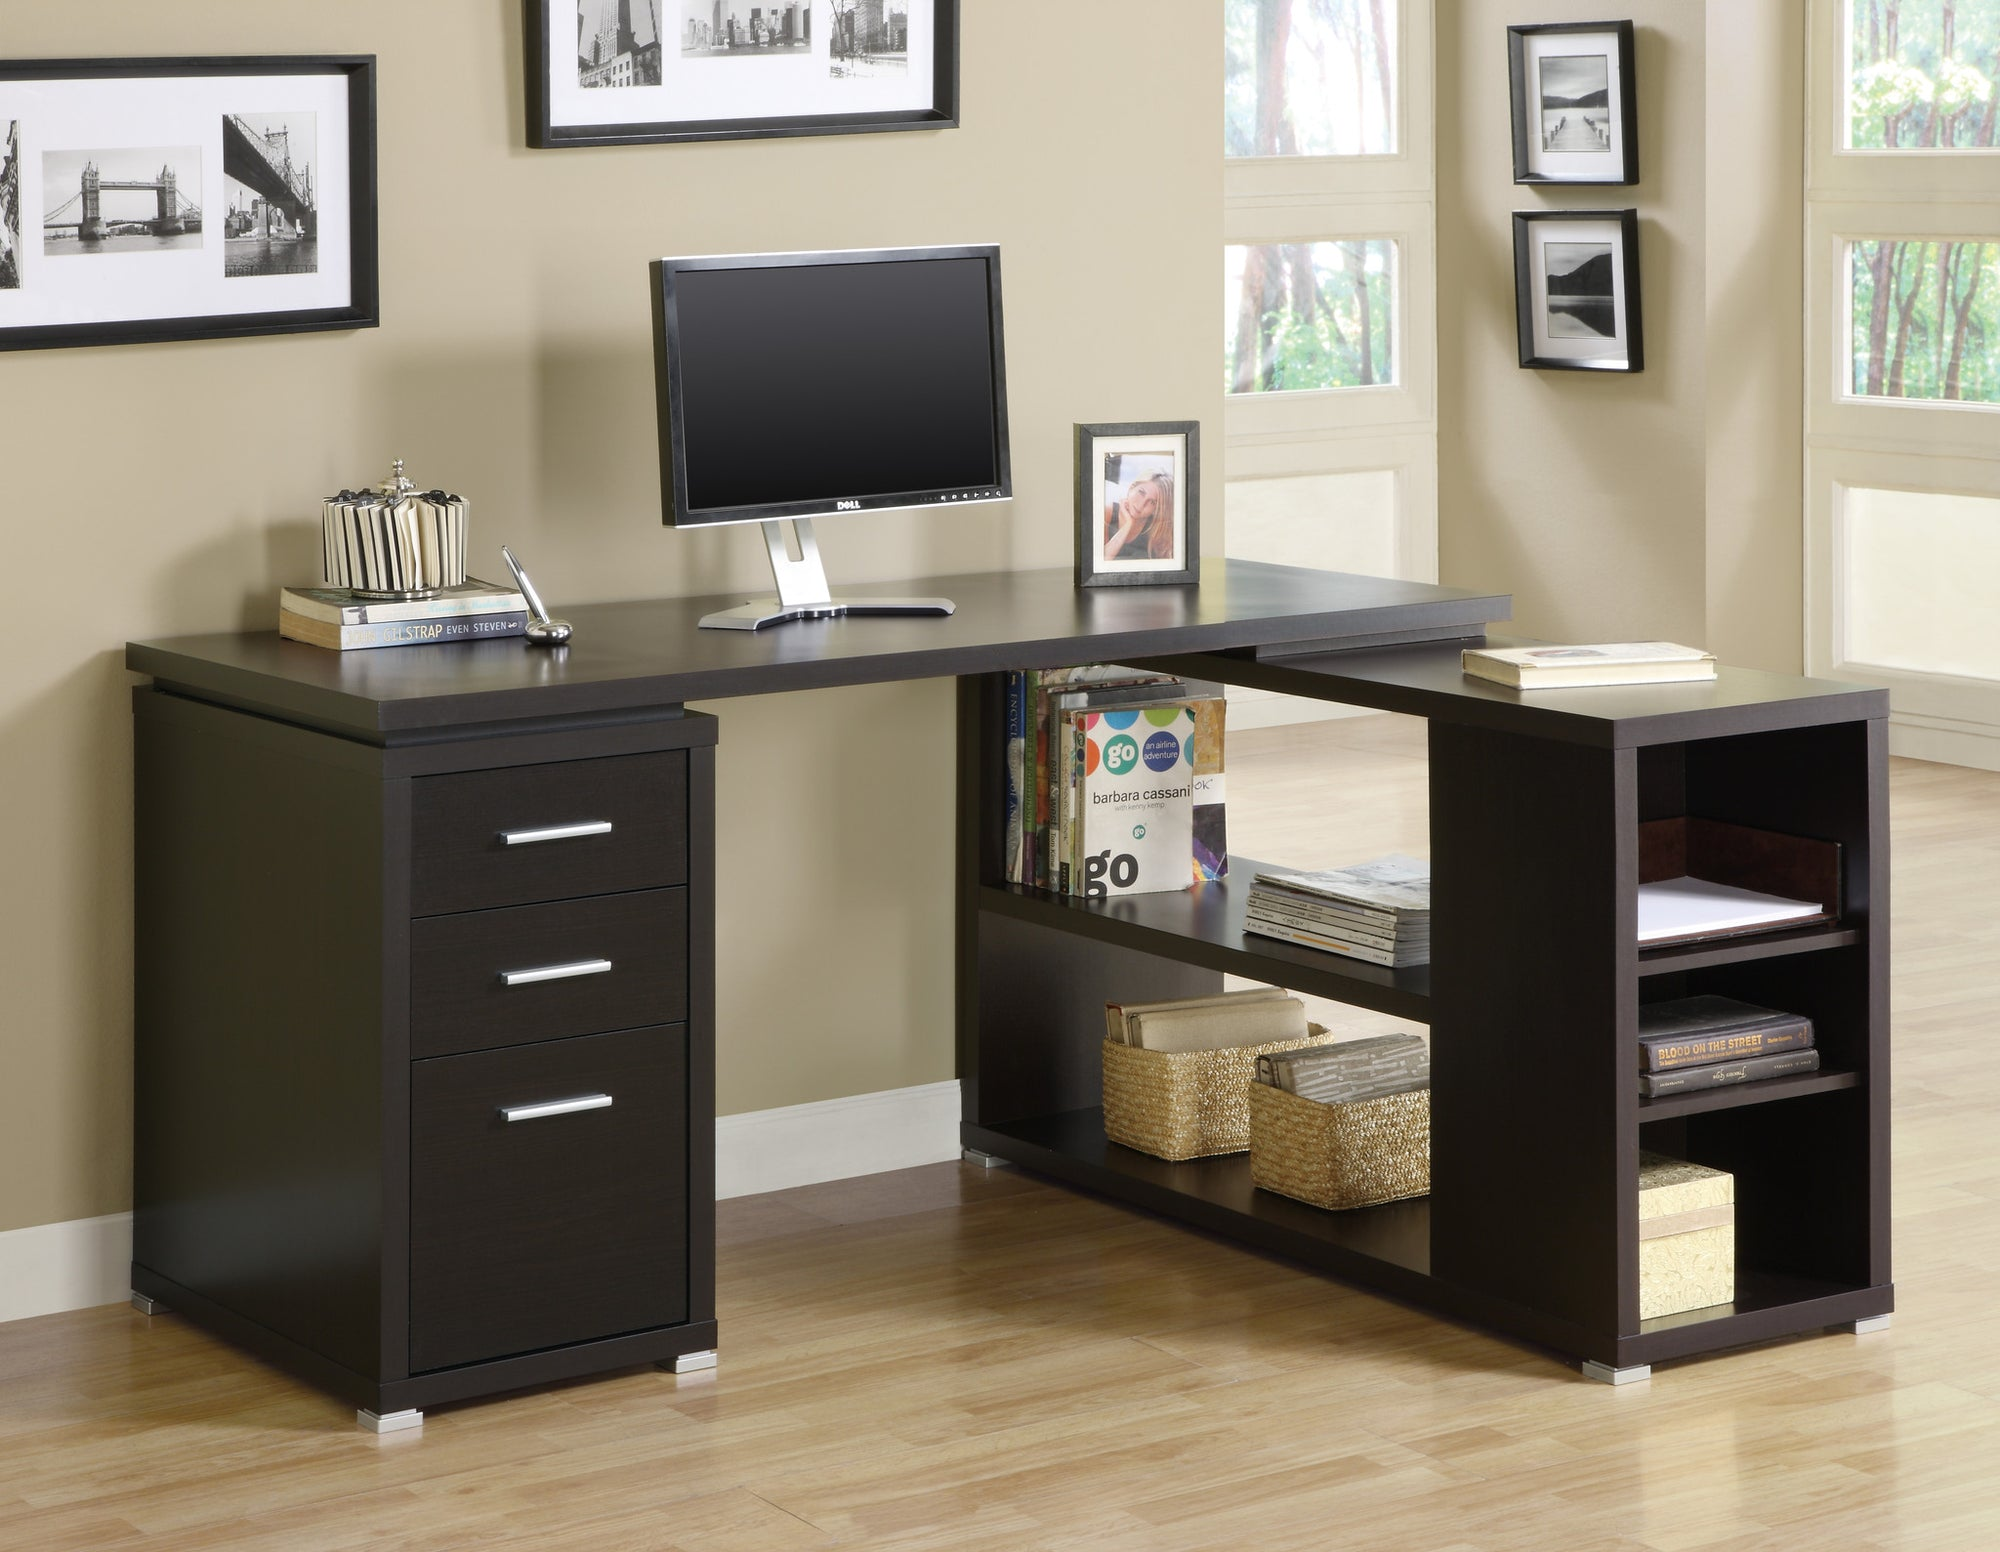 Charmant Cappuccino Corner L Shaped Office Desk With Drawers U0026 Shelving